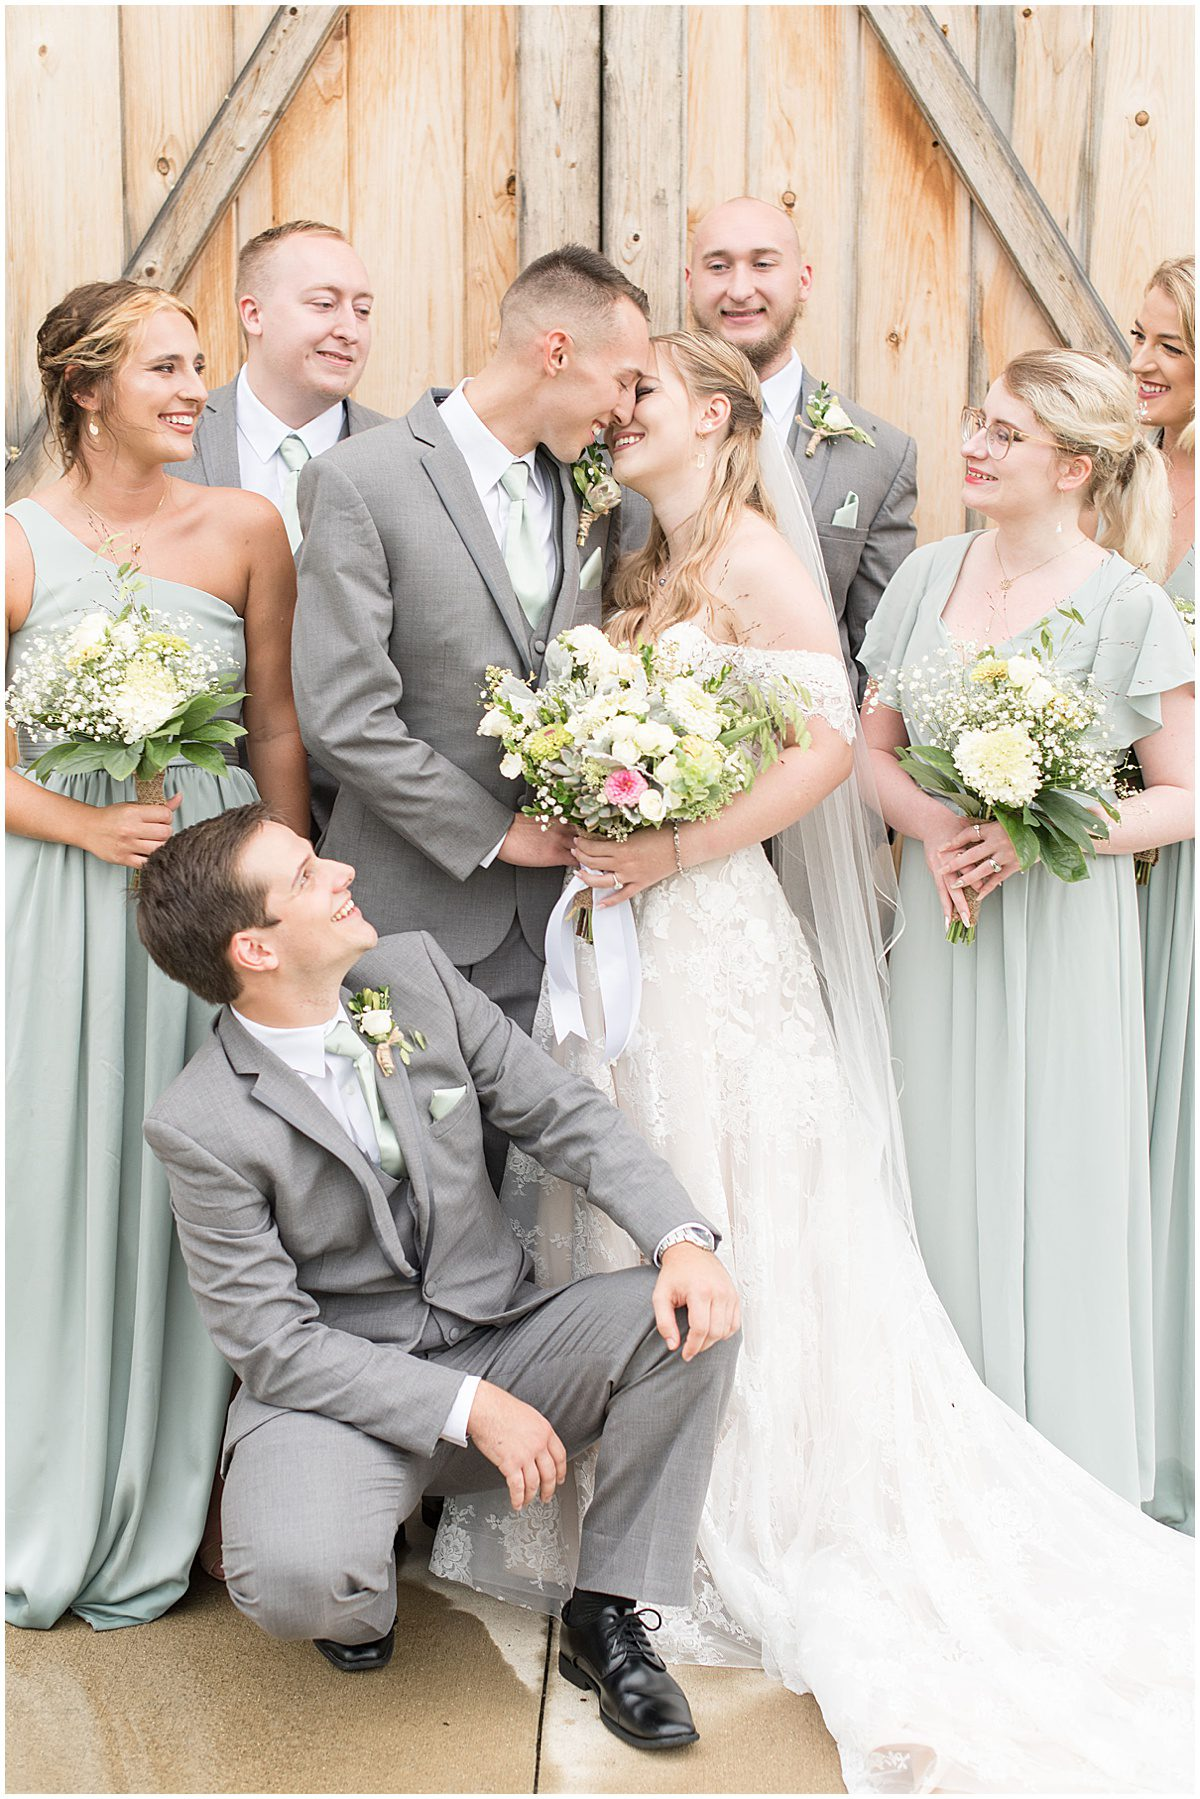 Bridal party at Whippoorwill Hill wedding in Bloomington, Indiana by Victoria Rayburn Photography